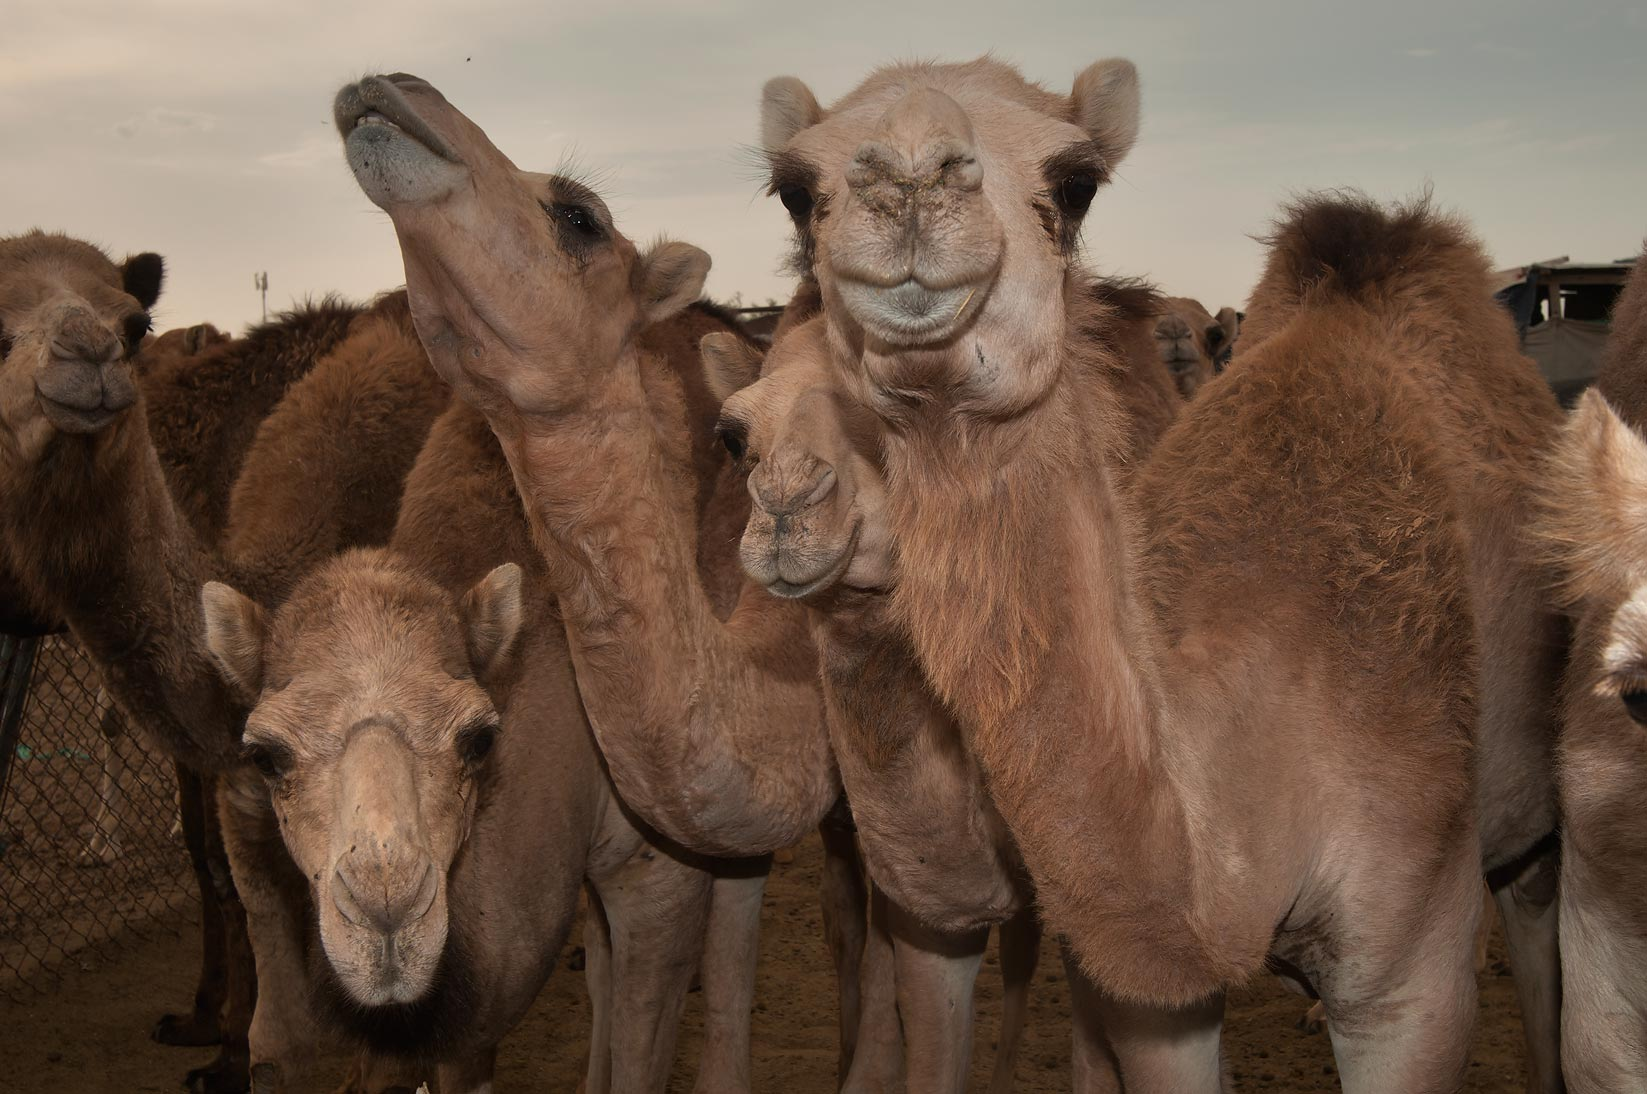 Several camels in animal market. Doha, Qatar